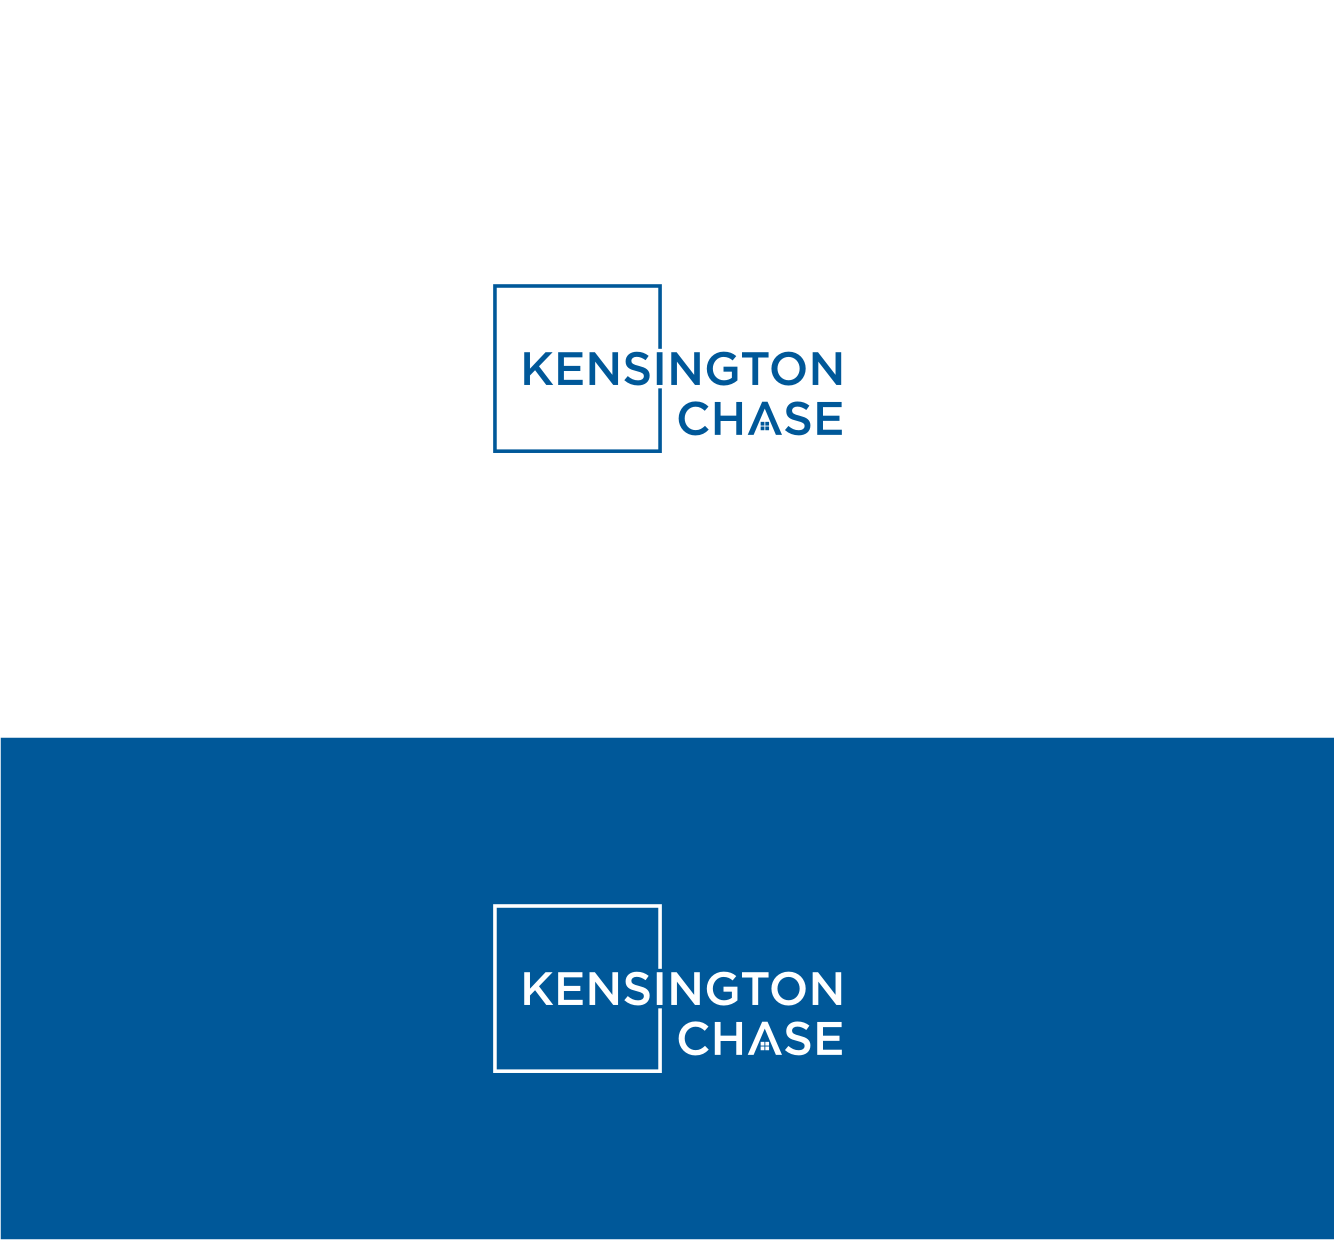 Logo Design by Sigitumarali Sigit - Entry No. 68 in the Logo Design Contest Kensington Chase  Logo Design.